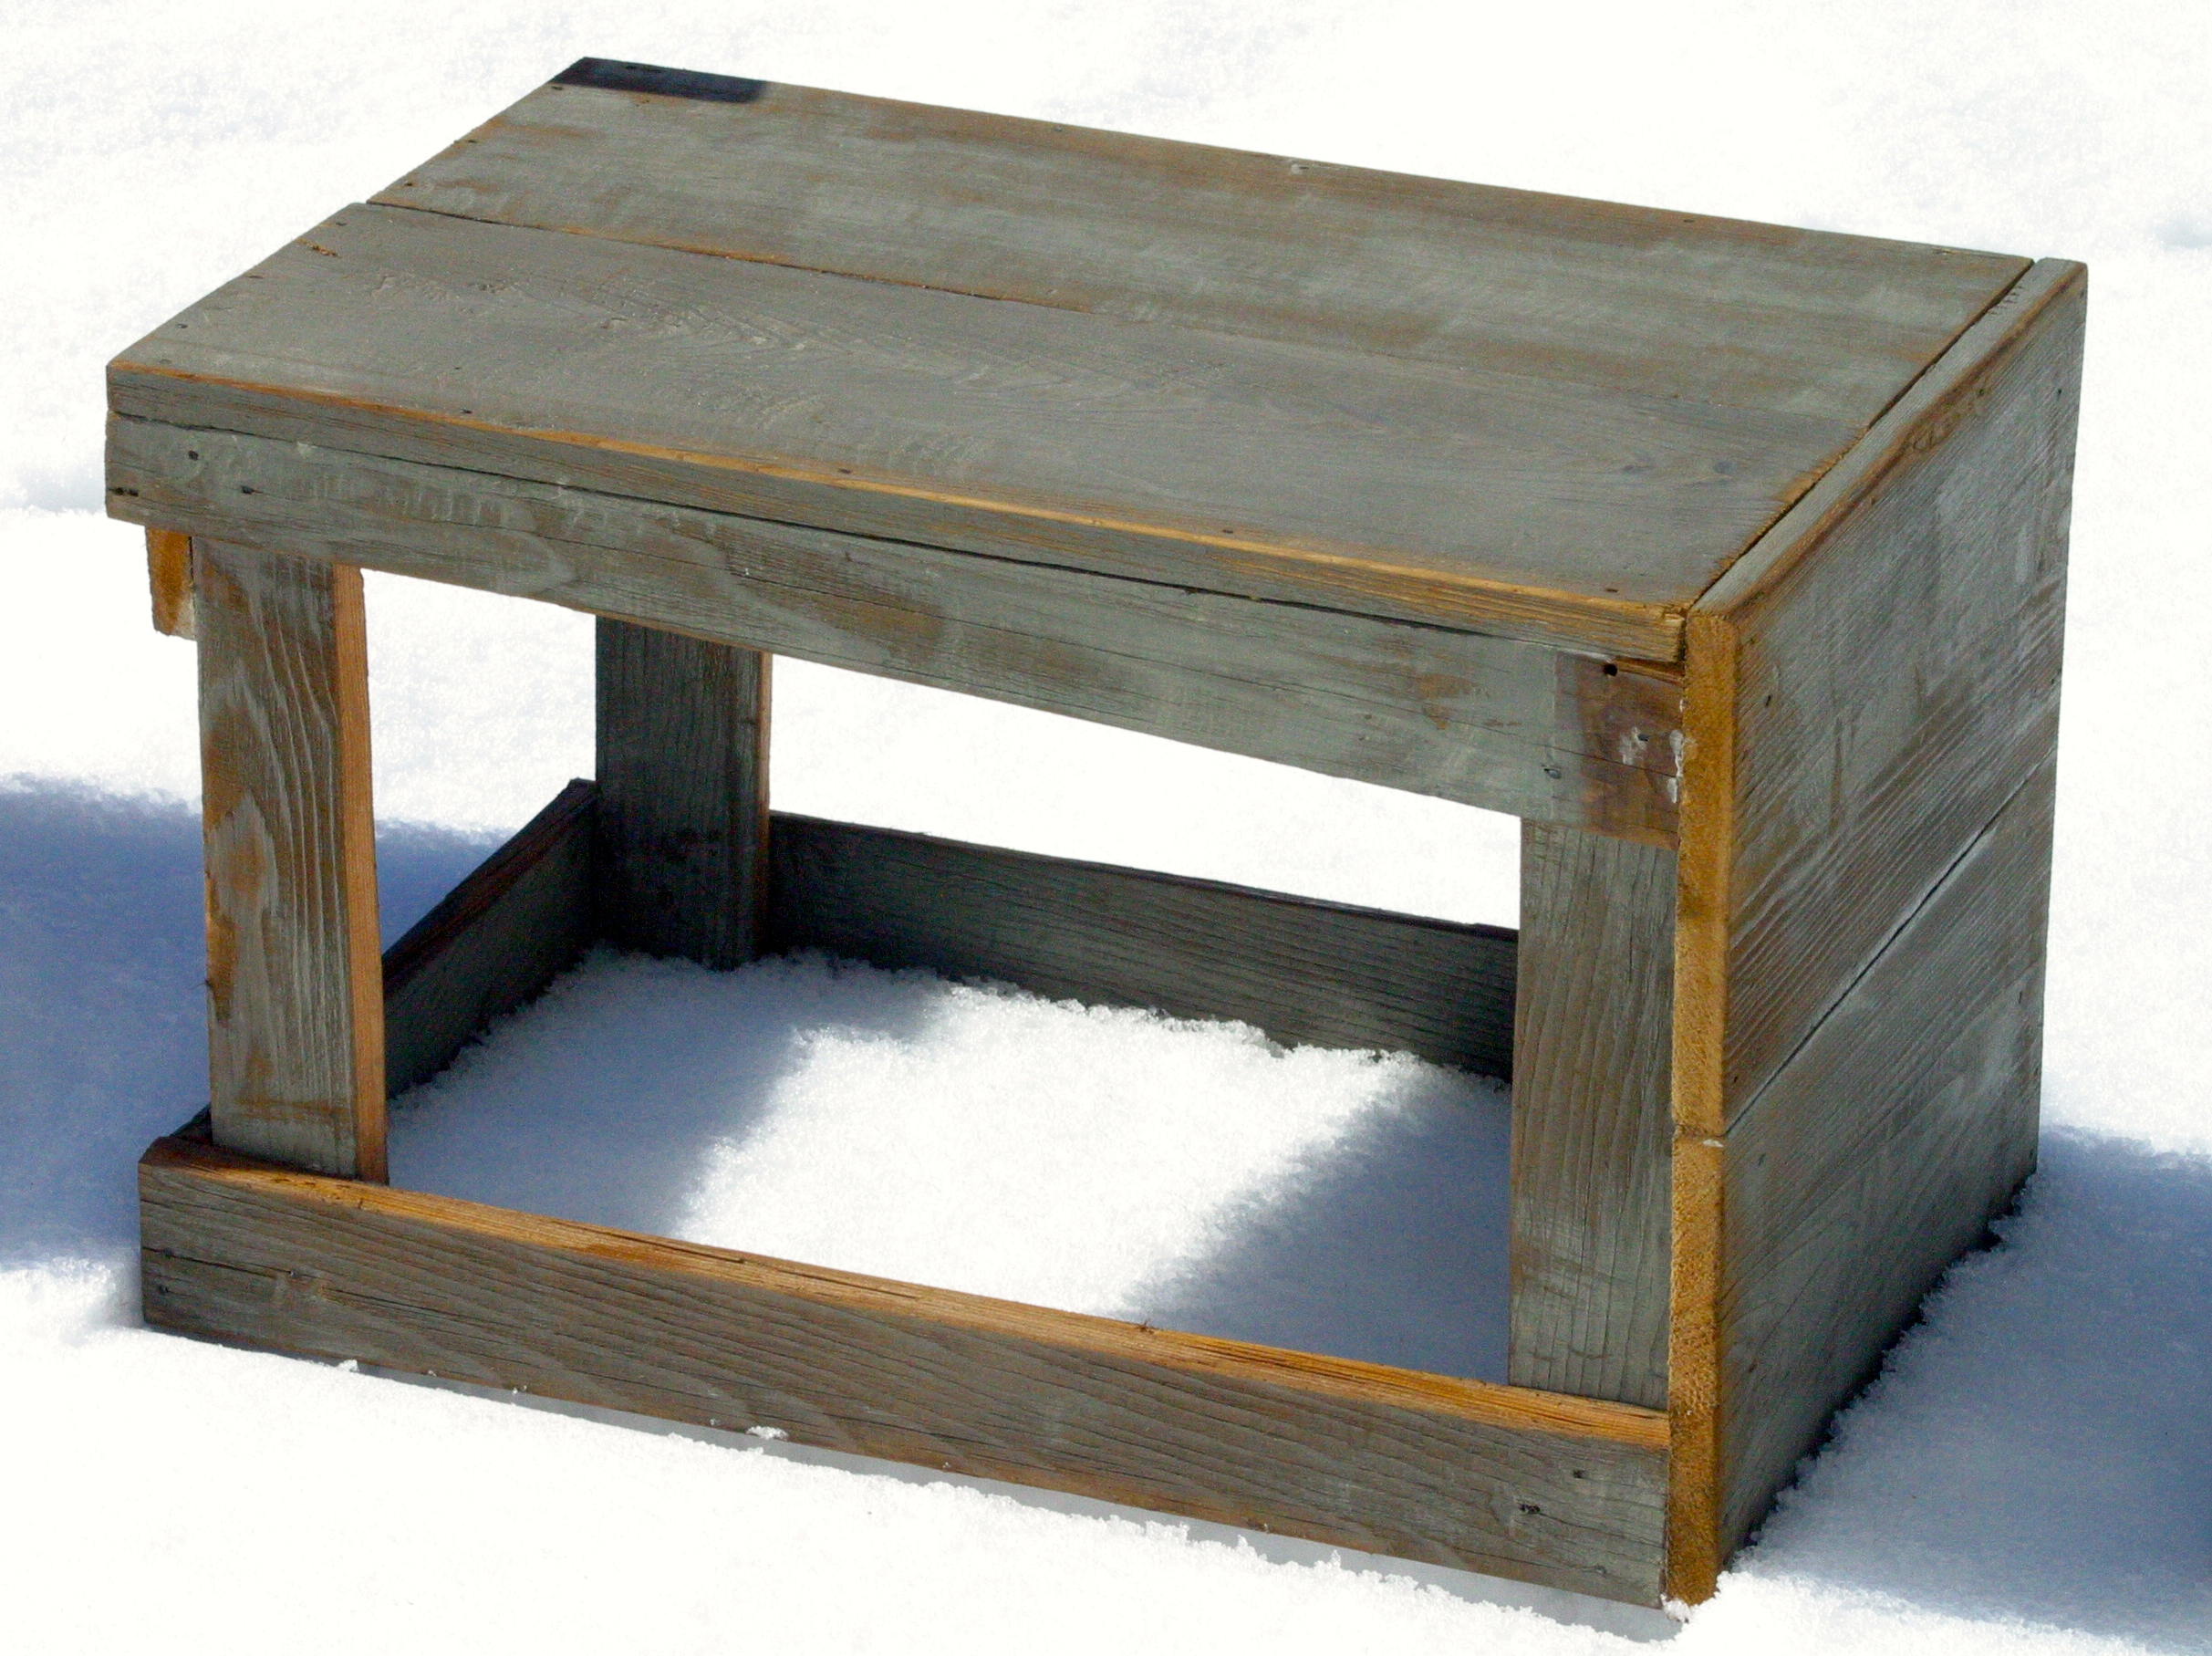 pt 5 make your own free furniture with simple tools - tim sway perspectives